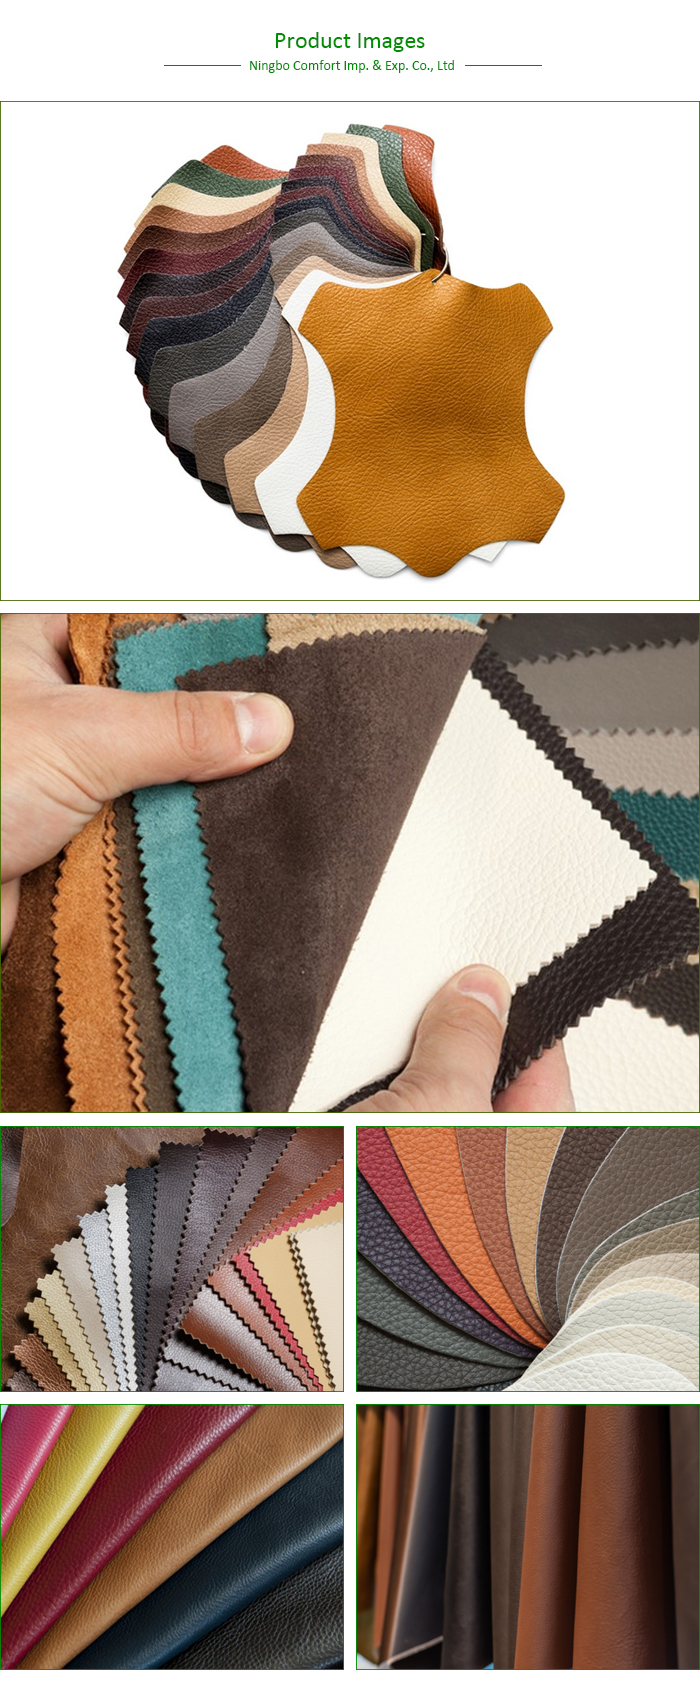 pvc pu synthetic leather stocklot